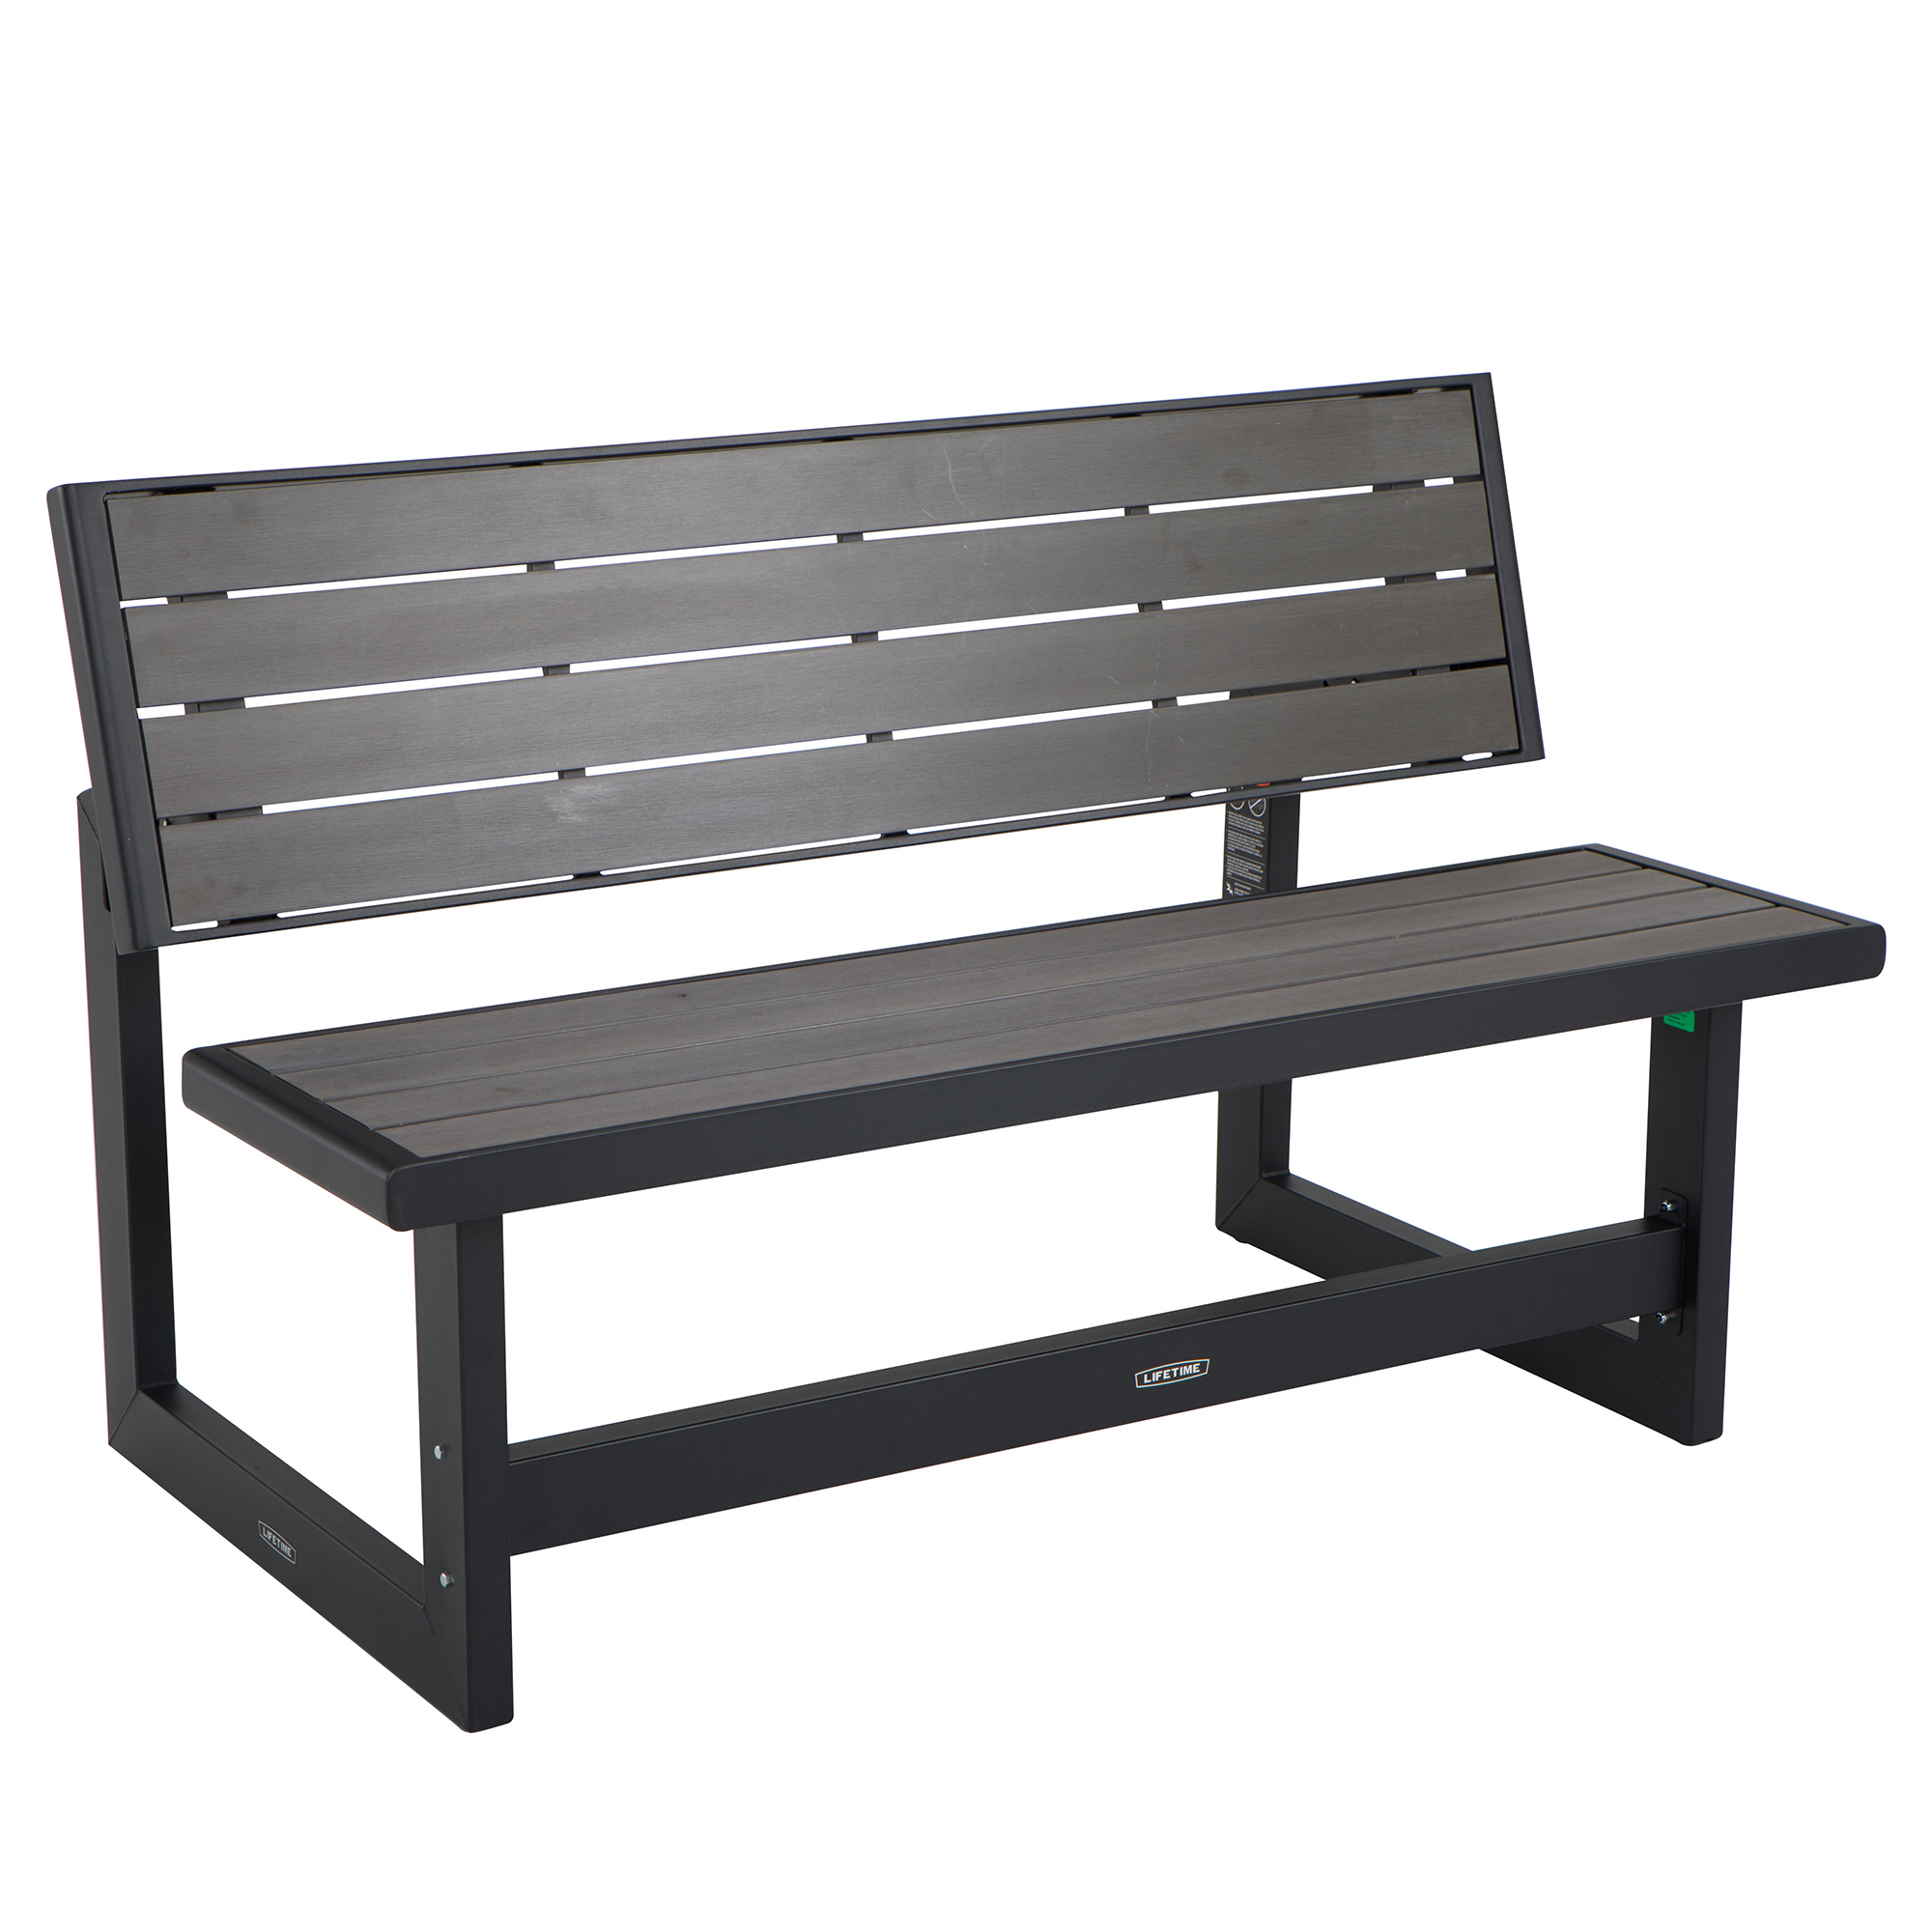 Lifetime Convertible Bench, Harbor Gray, 60253